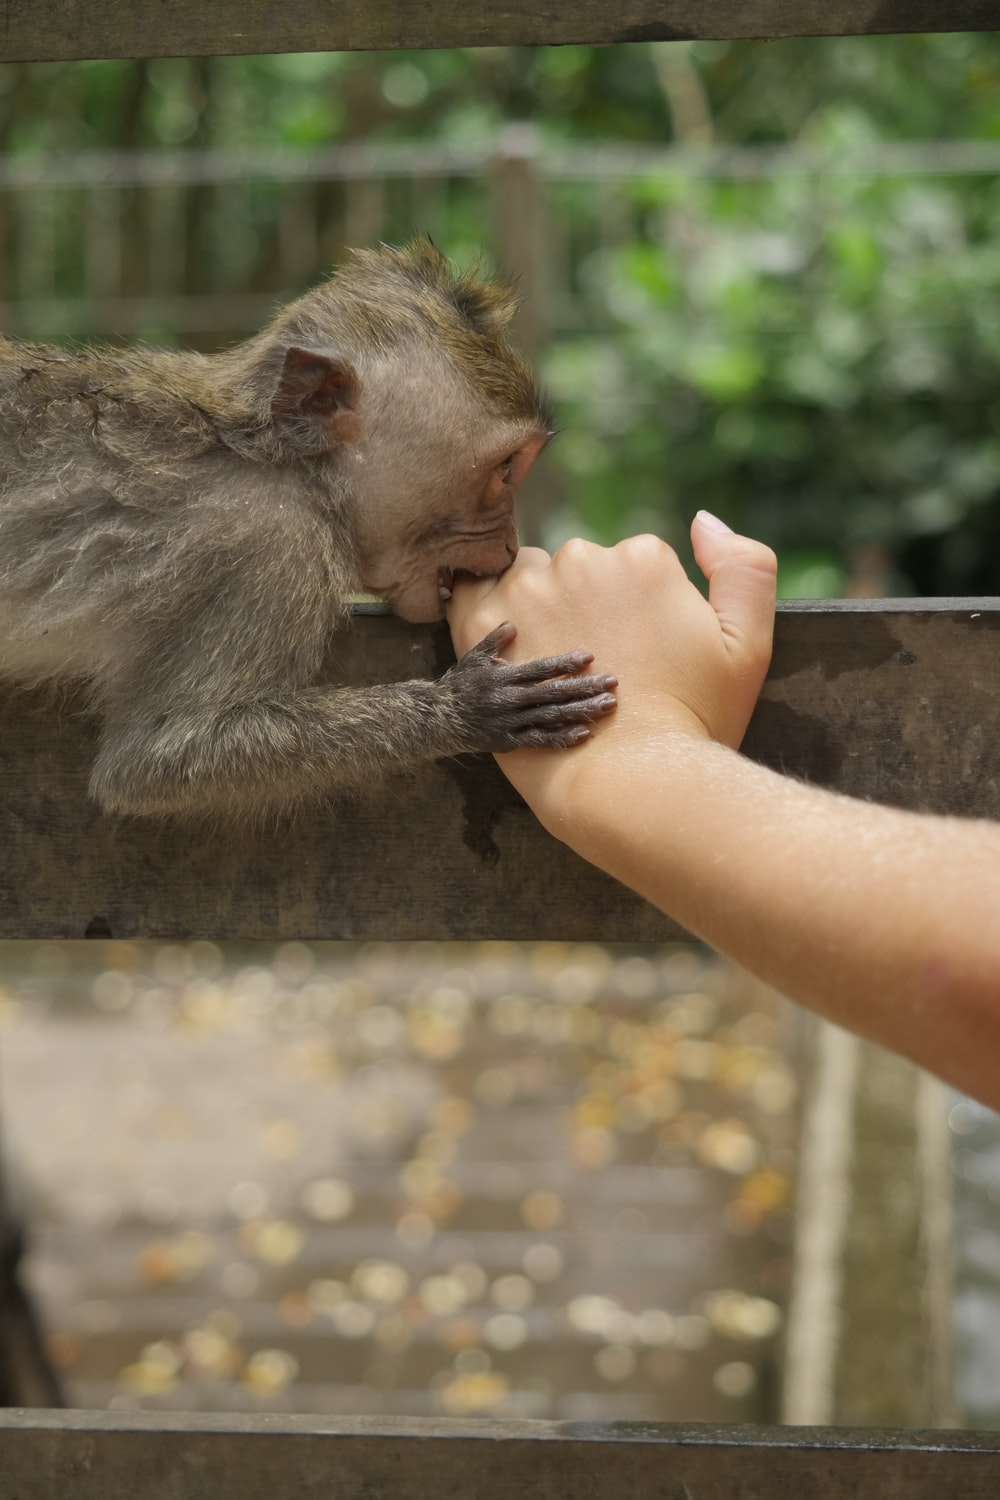 monkey biting the hand of person